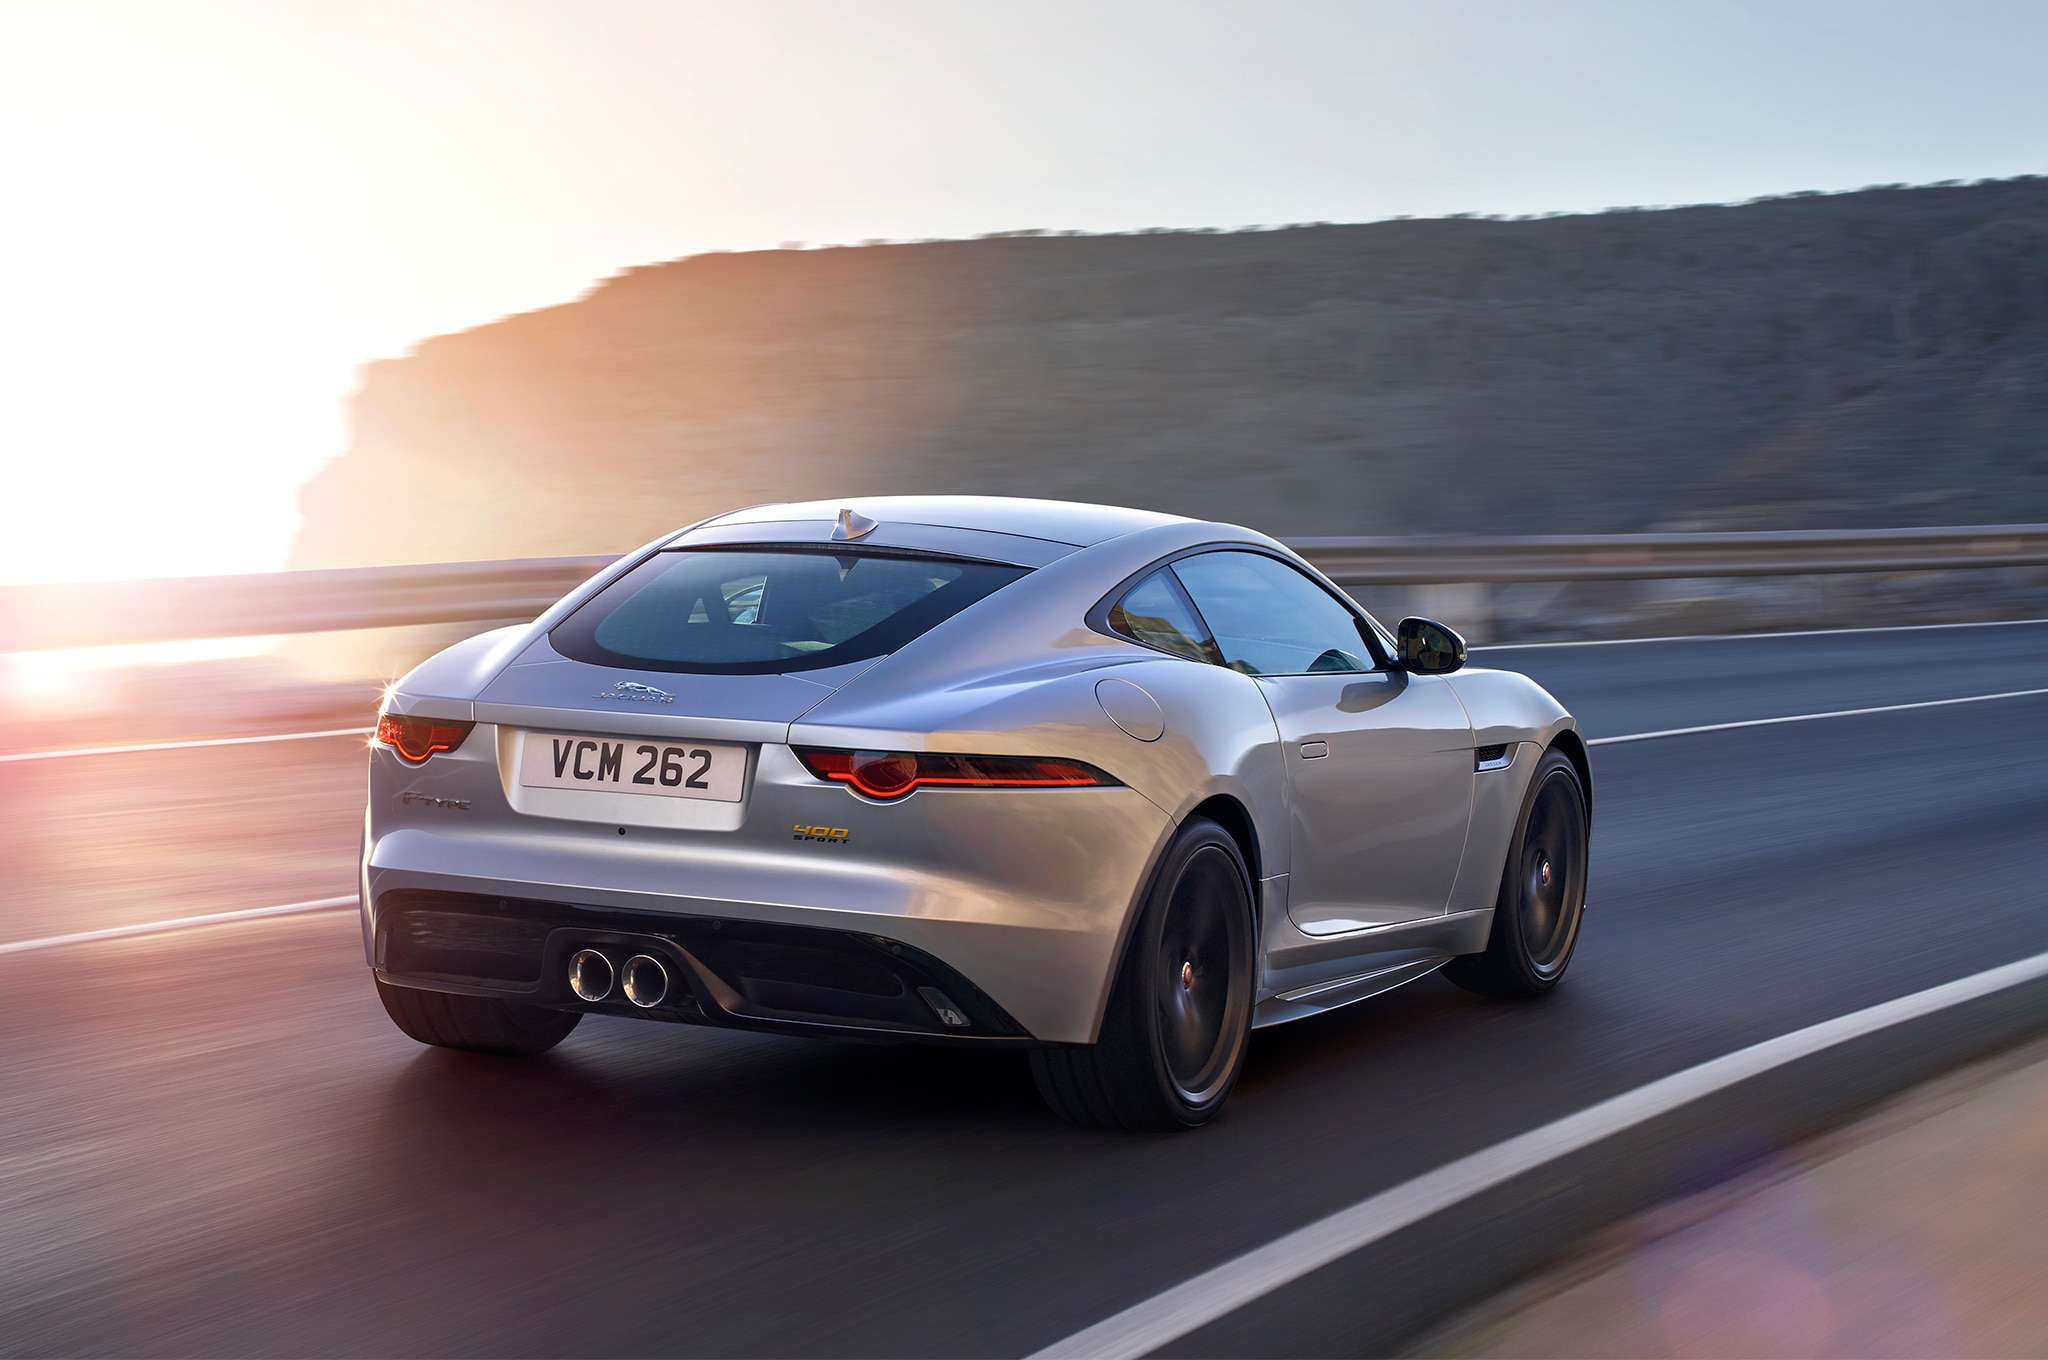 2018-Jaguar-F-Type-400-Sport-rear-three-quarter-in-motion-9